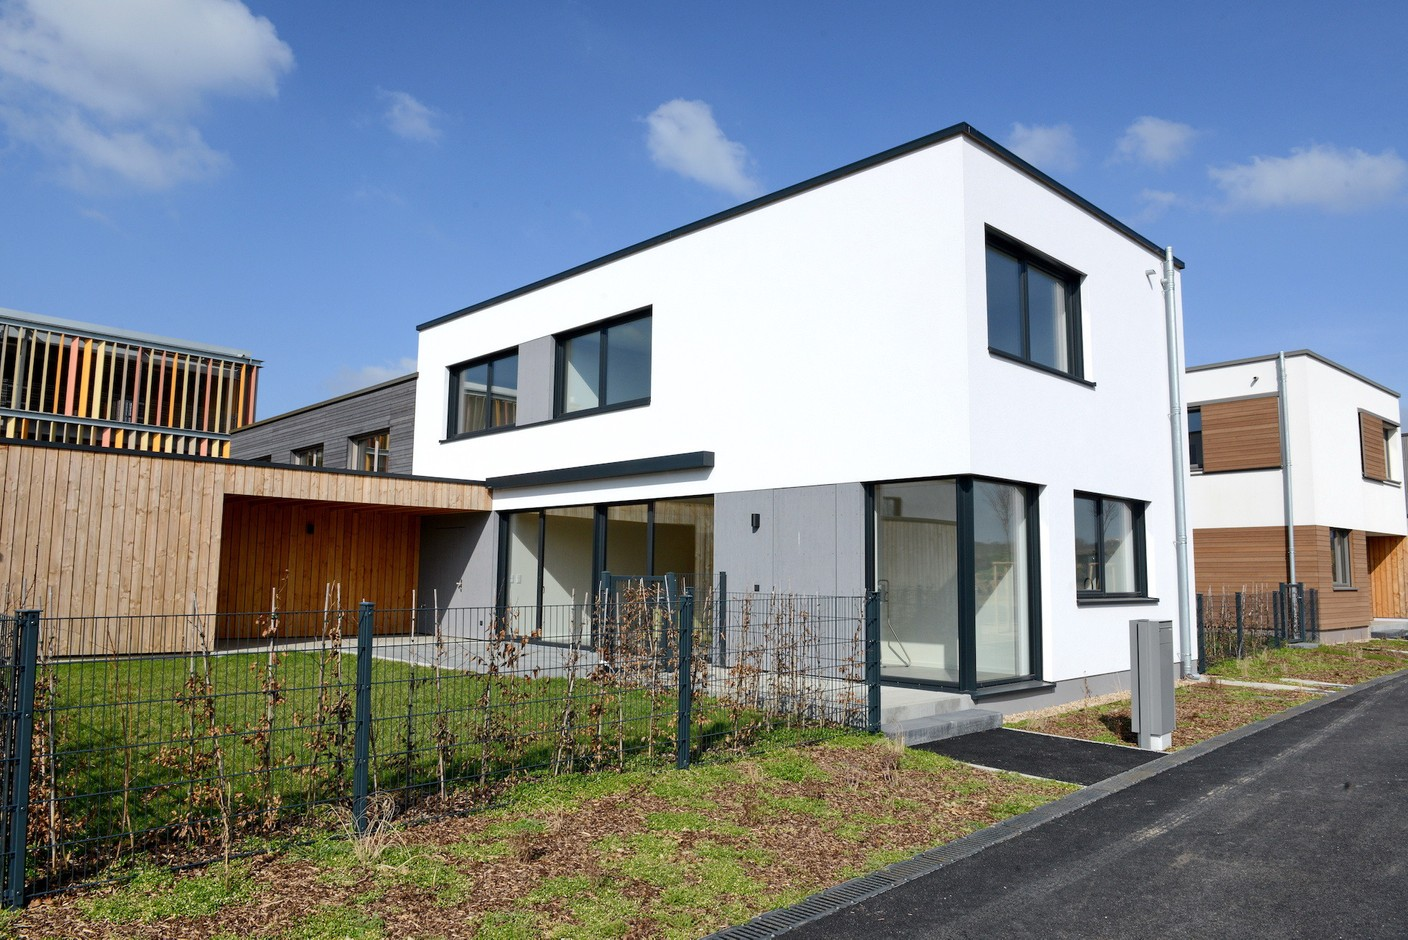 To give future buyers a better idea of what the site will look like, show houses have been built on the site. (Photo: Mediatheque Commune de Kehlen - Raymond Faber)